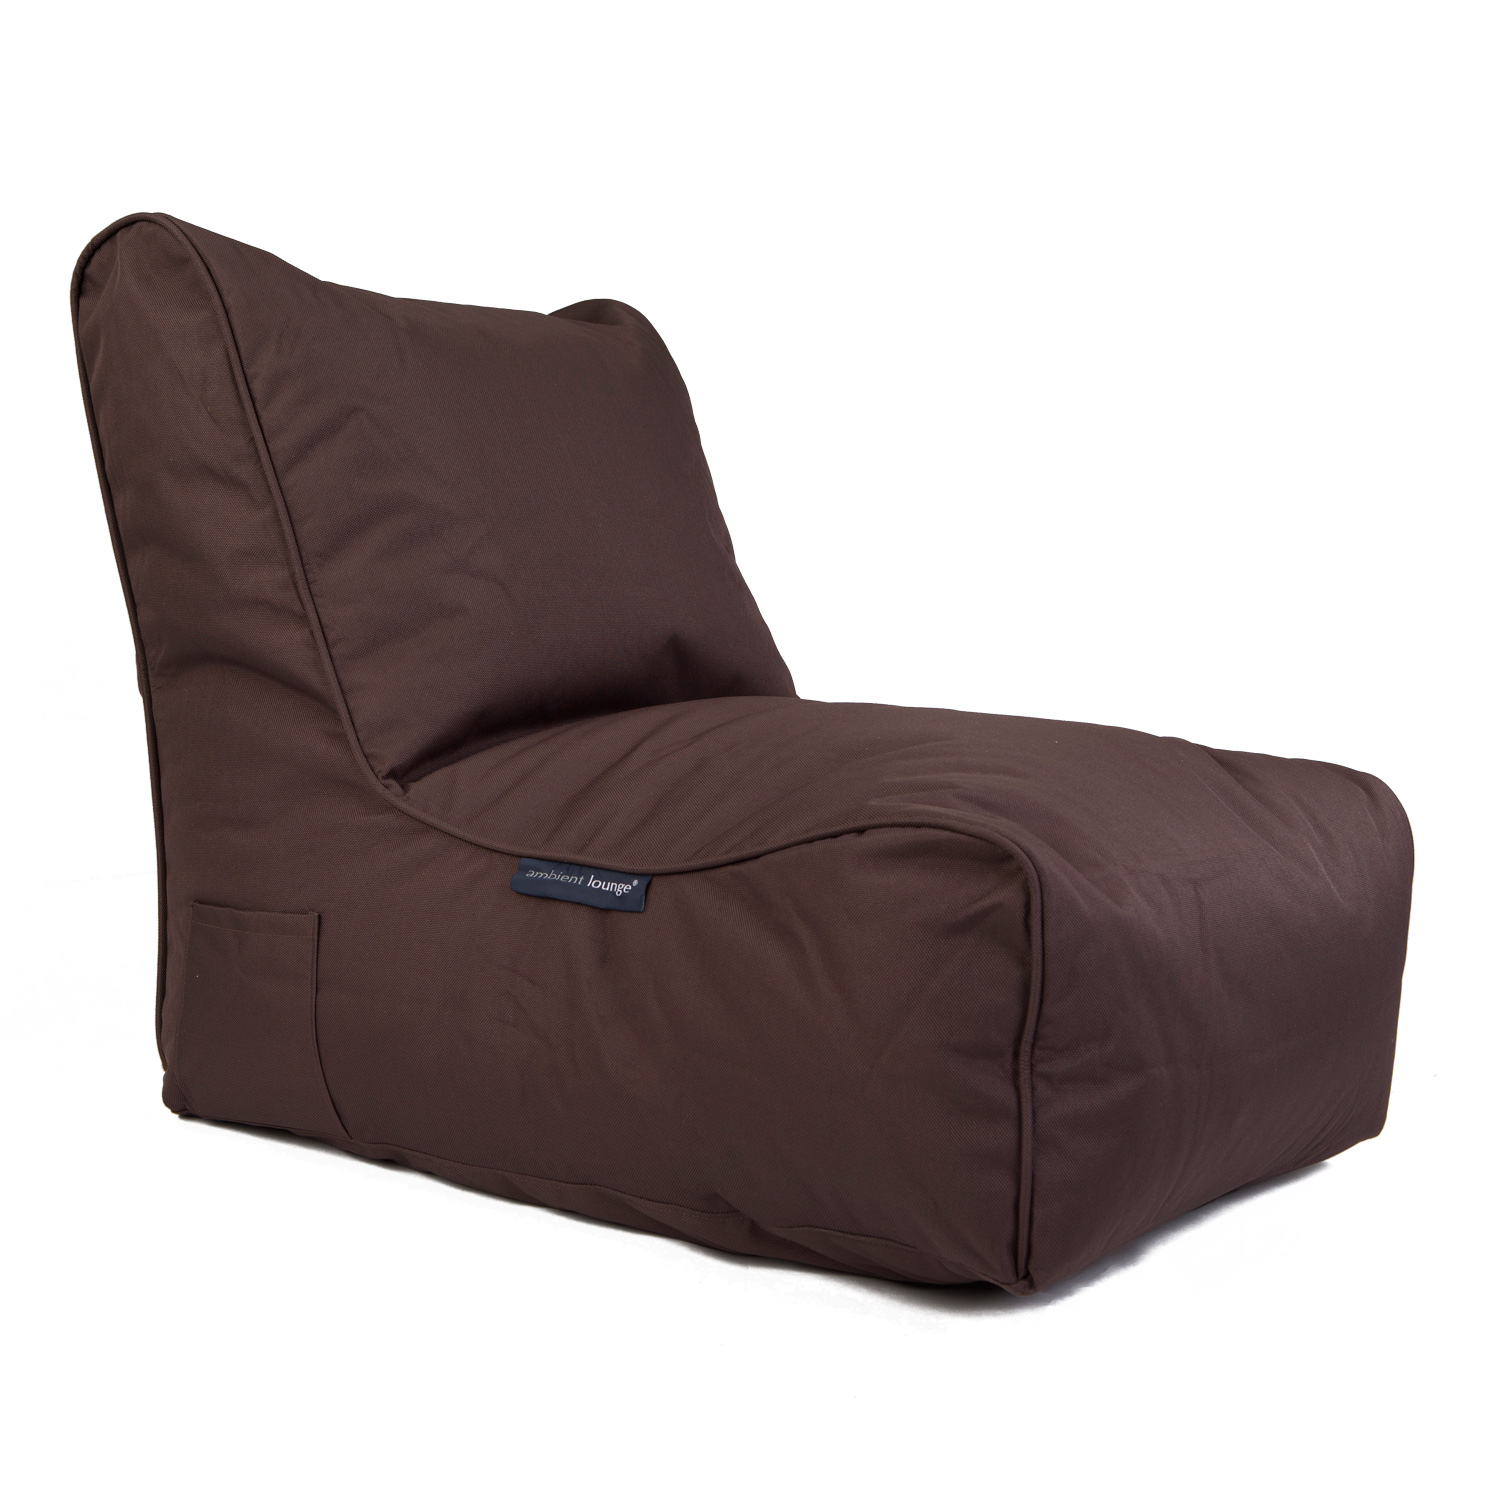 Outdoor Bean Bags Evolution Sofa Mud Chocolate